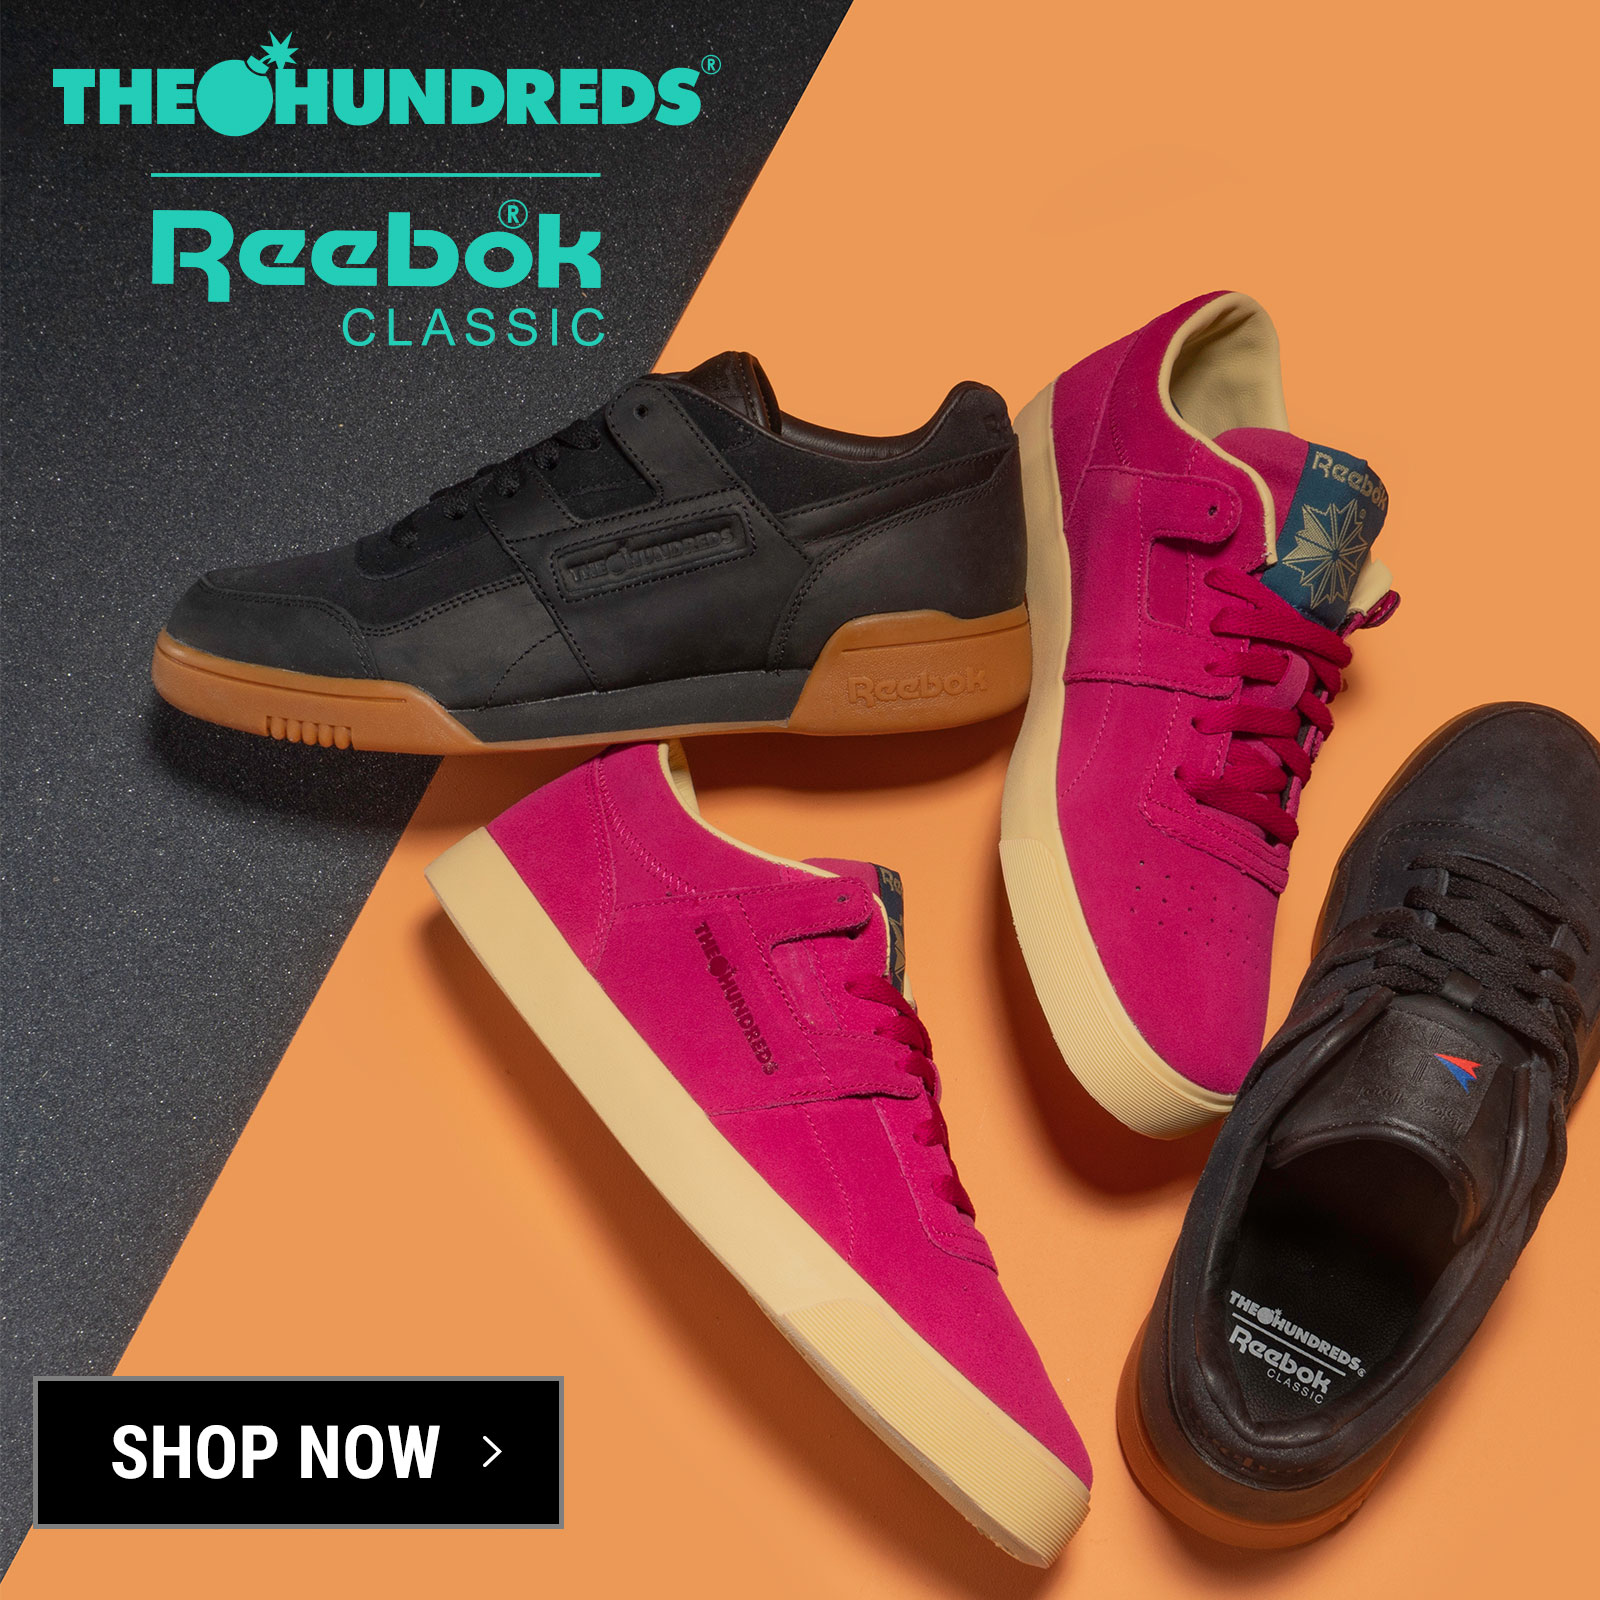 los angeles d84d8 c7912 The Hundreds: THE HUNDREDS X REEBOK CLASSIC :: AVAILABLE NOW | Milled